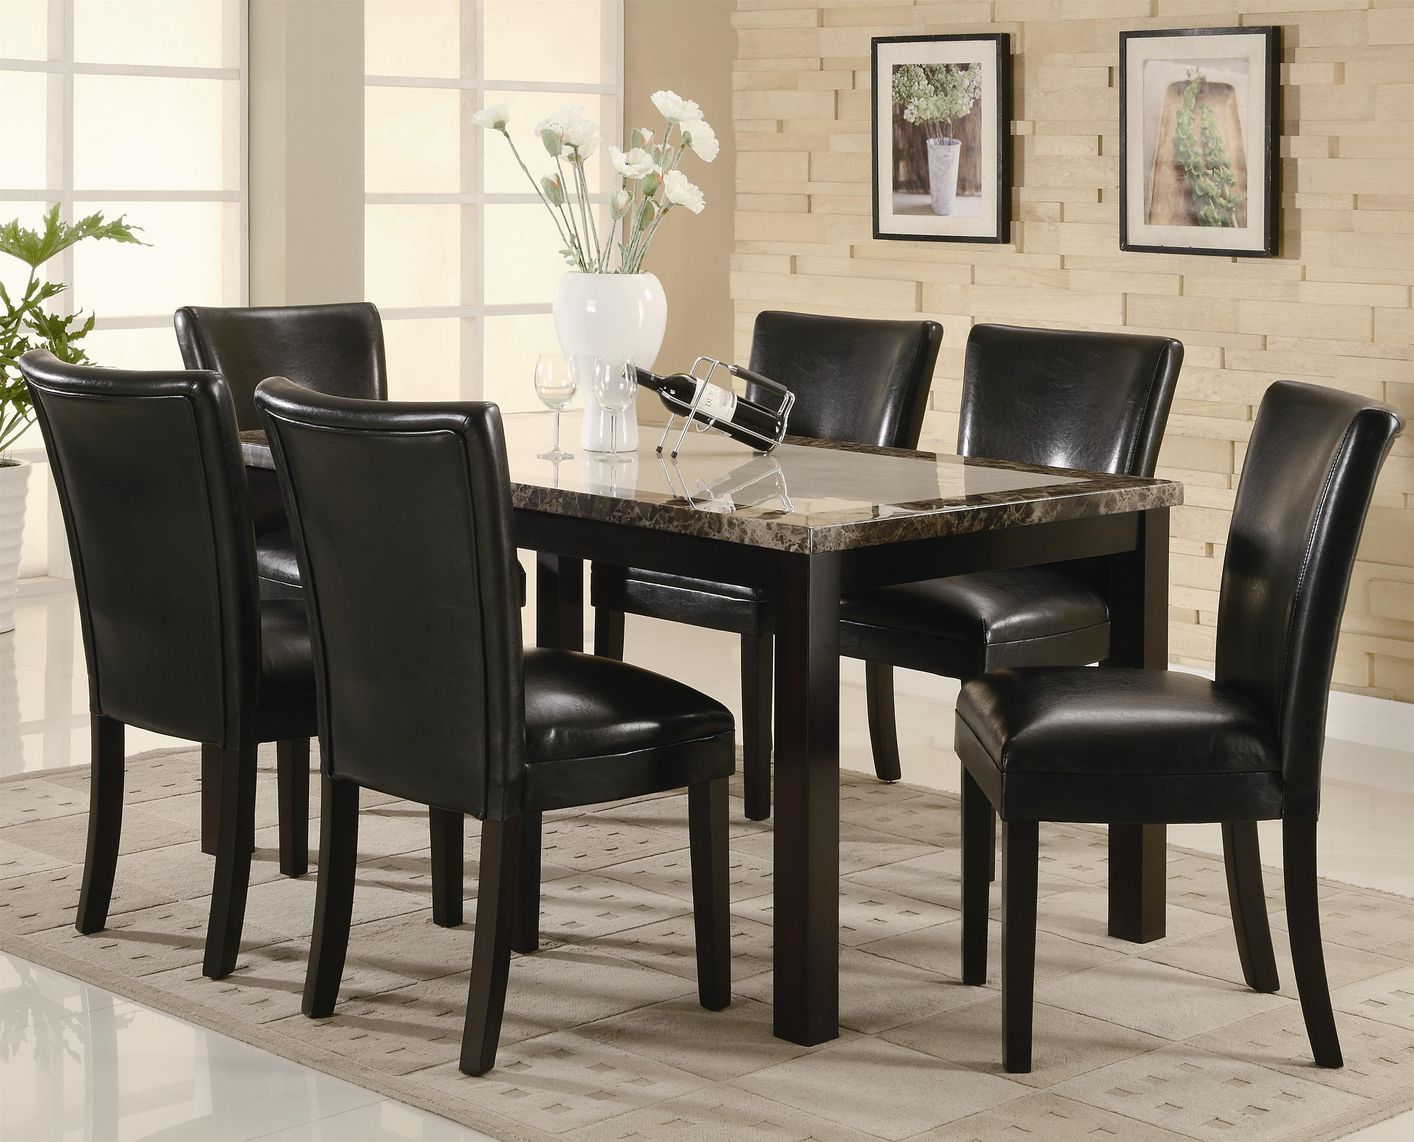 Coaster carter 102260 102262 brown wood and marble dining table set in los angeles ca - Black dining room tables ...